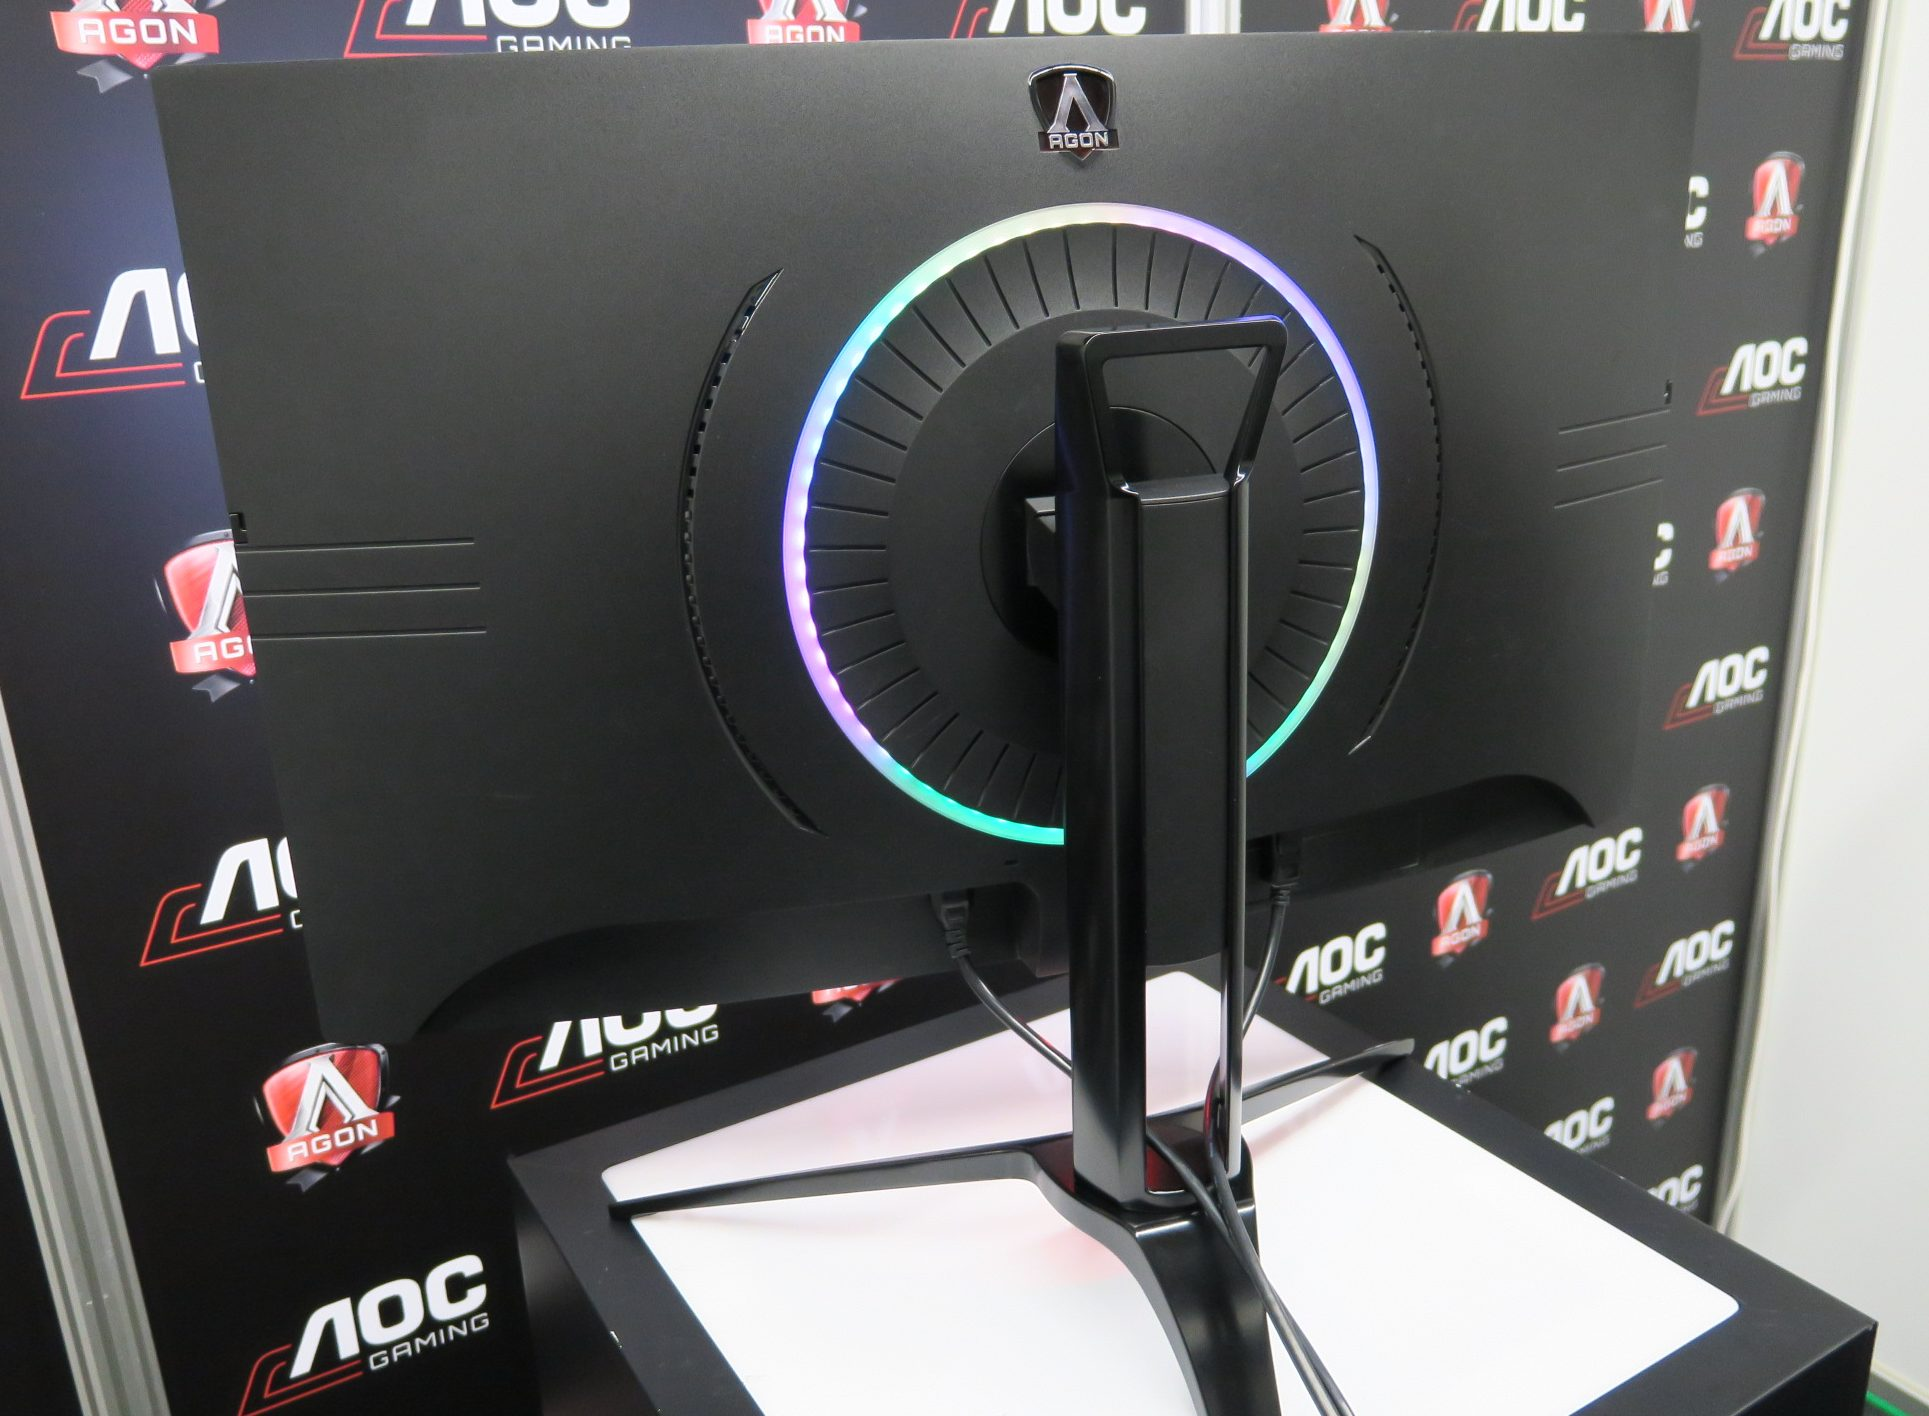 AOC Gaming Monitore Gamescom 2017 GC Text